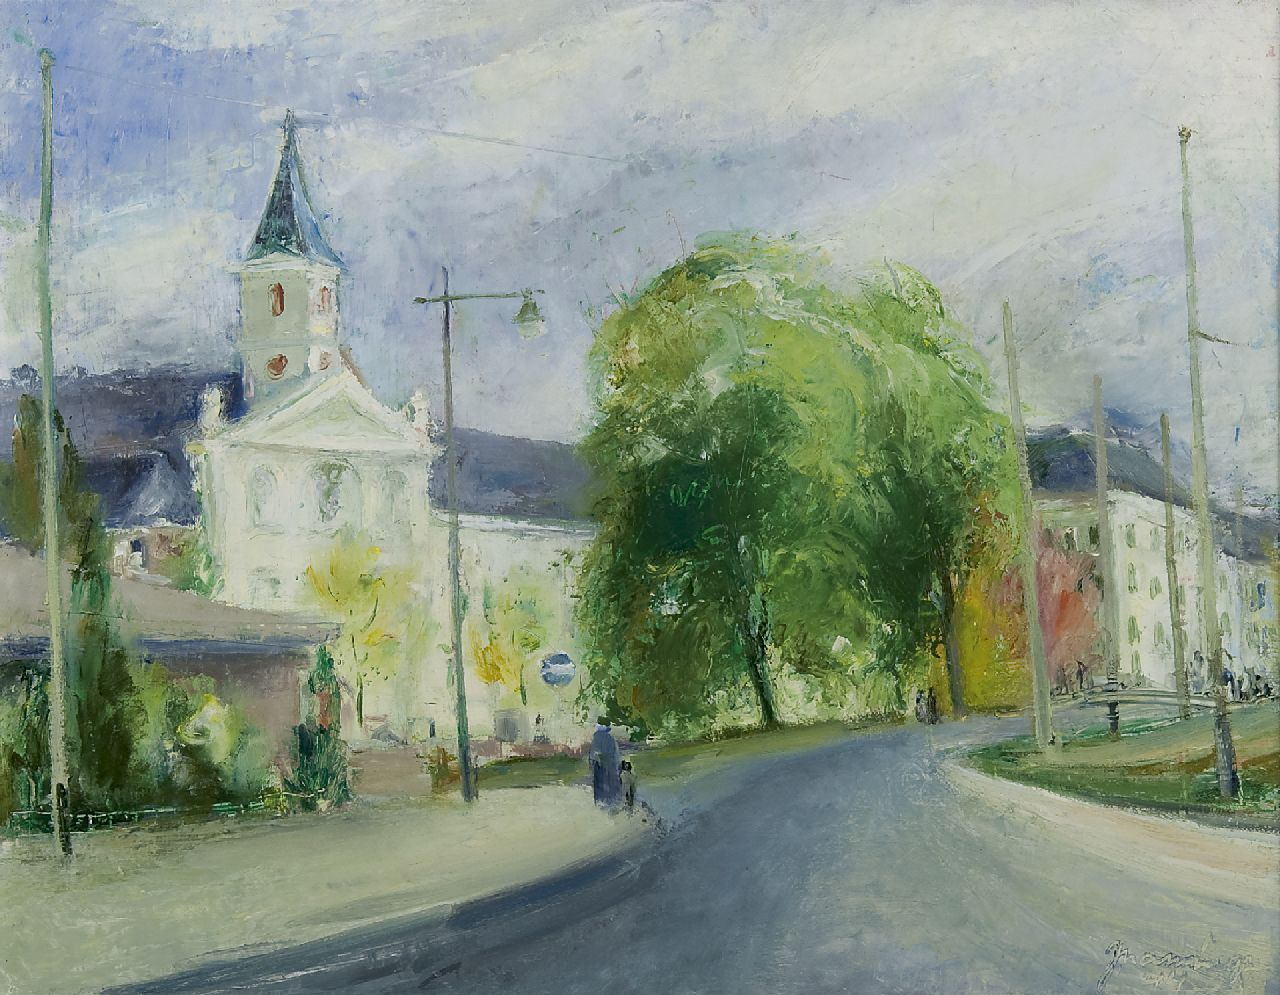 Nanninga J.  | Jacob 'Jaap' Nanninga | Paintings offered for sale | The Boskant church, The Hague, oil on canvas 42.3 x 54.6 cm, signed l.r. and dated '44